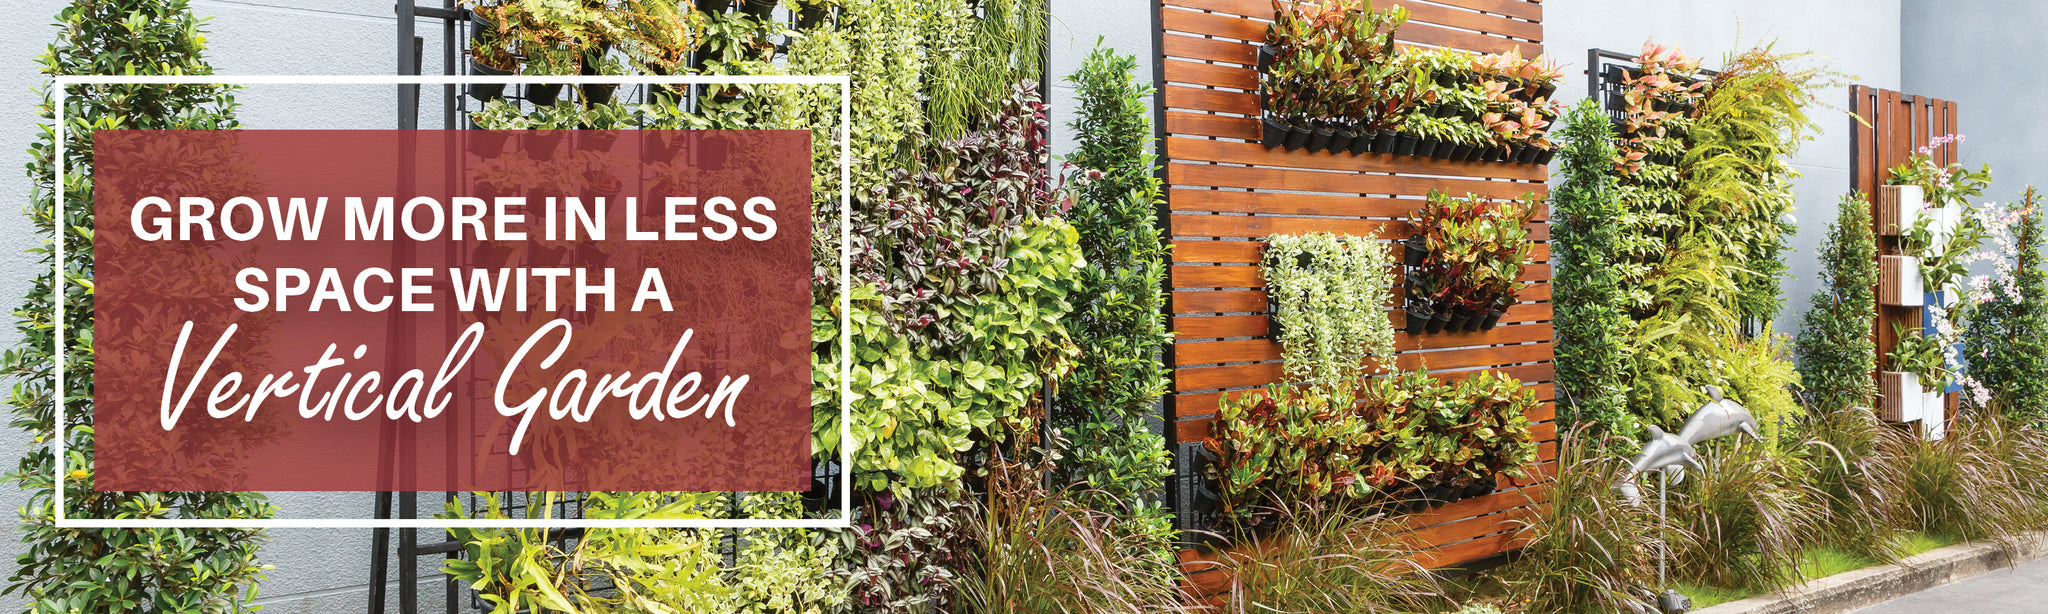 Grow More with Less Space with a Vertical Garden